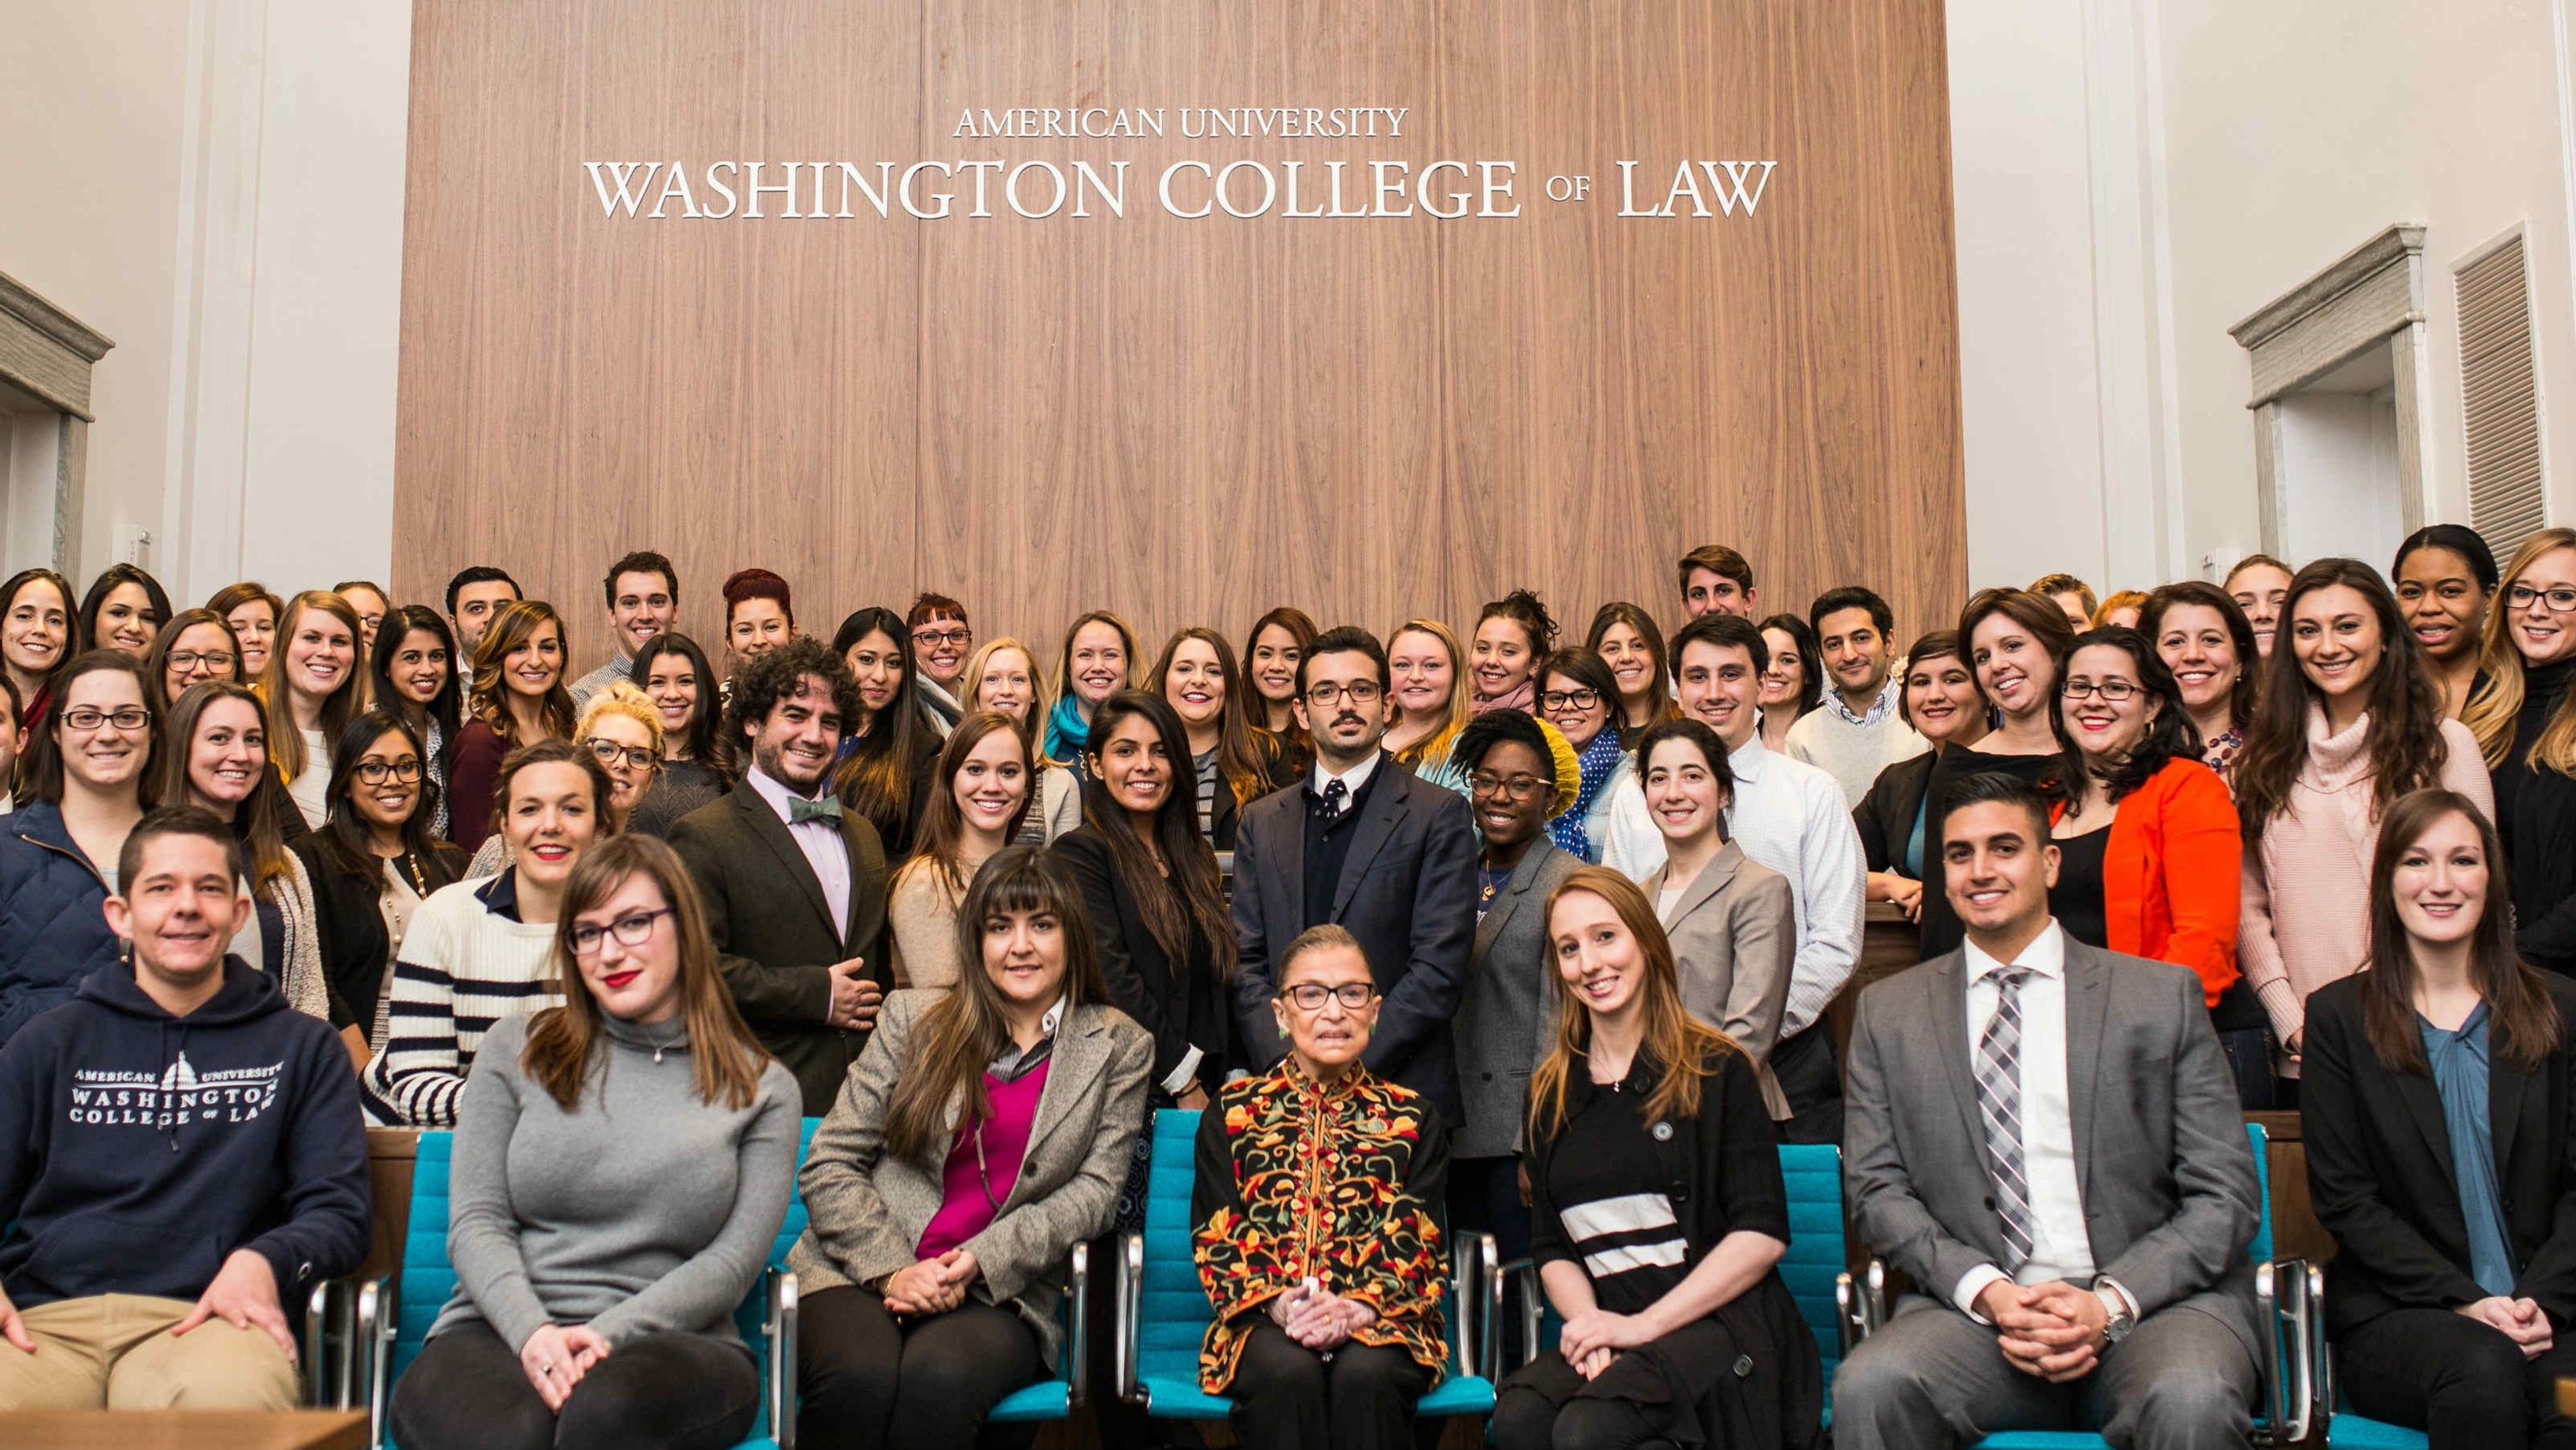 After delivering the keynote address at the February 2016 ribbon-cutting celebration for the new Washington College of Law, Justice Ginsburg took a tour of the law school and paused for a photo with students in the new Weinstein Courtroom